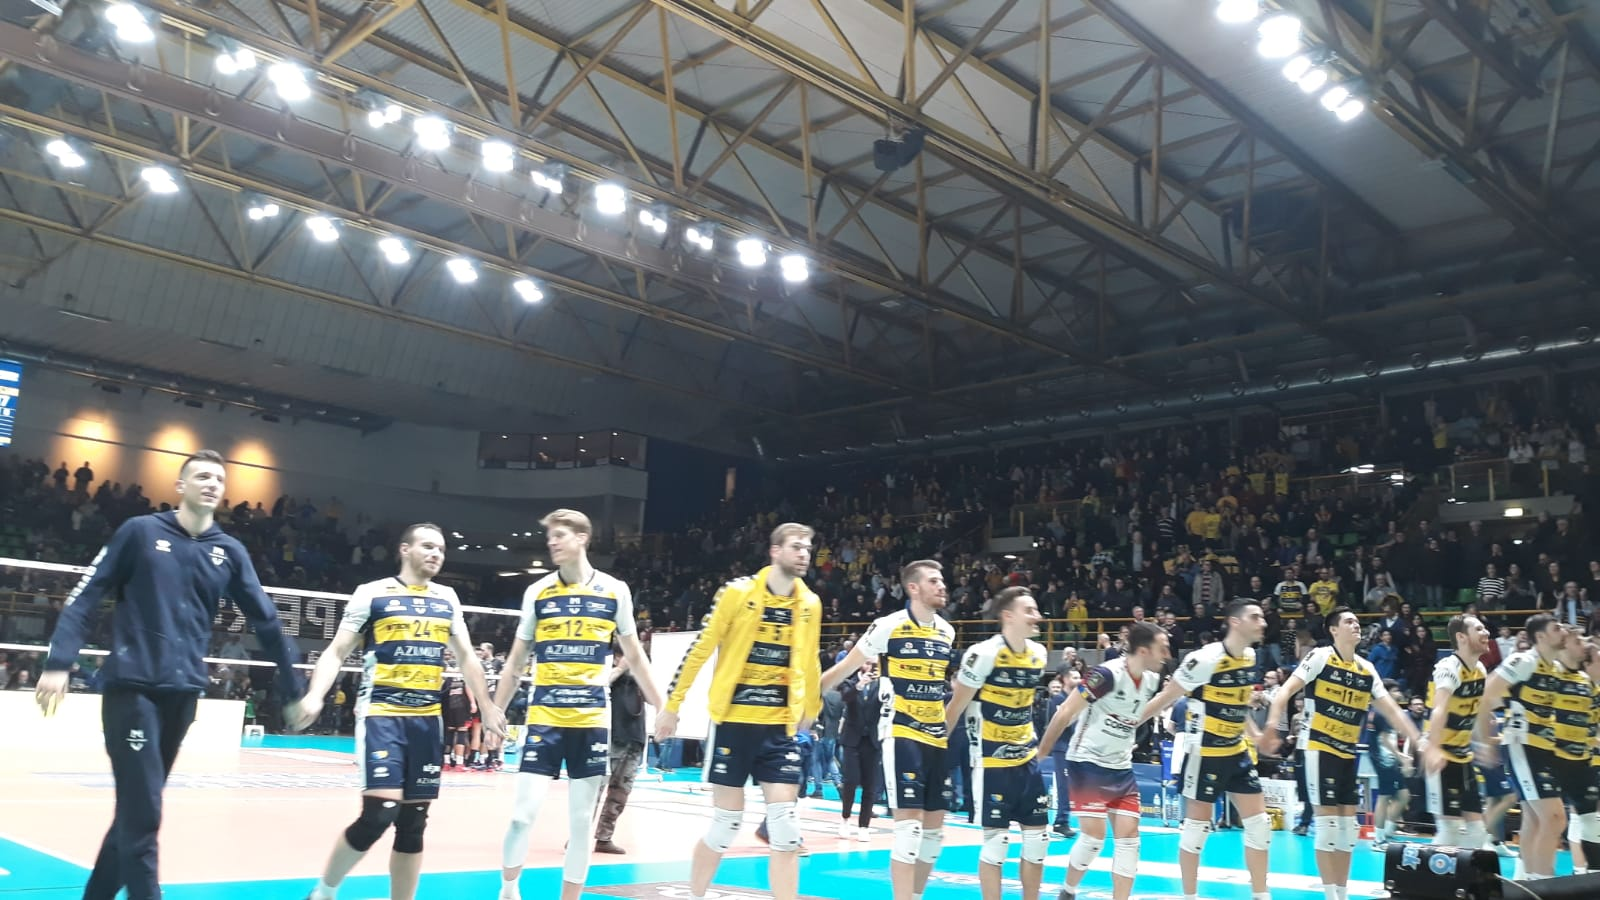 Azimut Leo Shoes Modena Vs. Bcc Castellana Grotte 30-12-2018